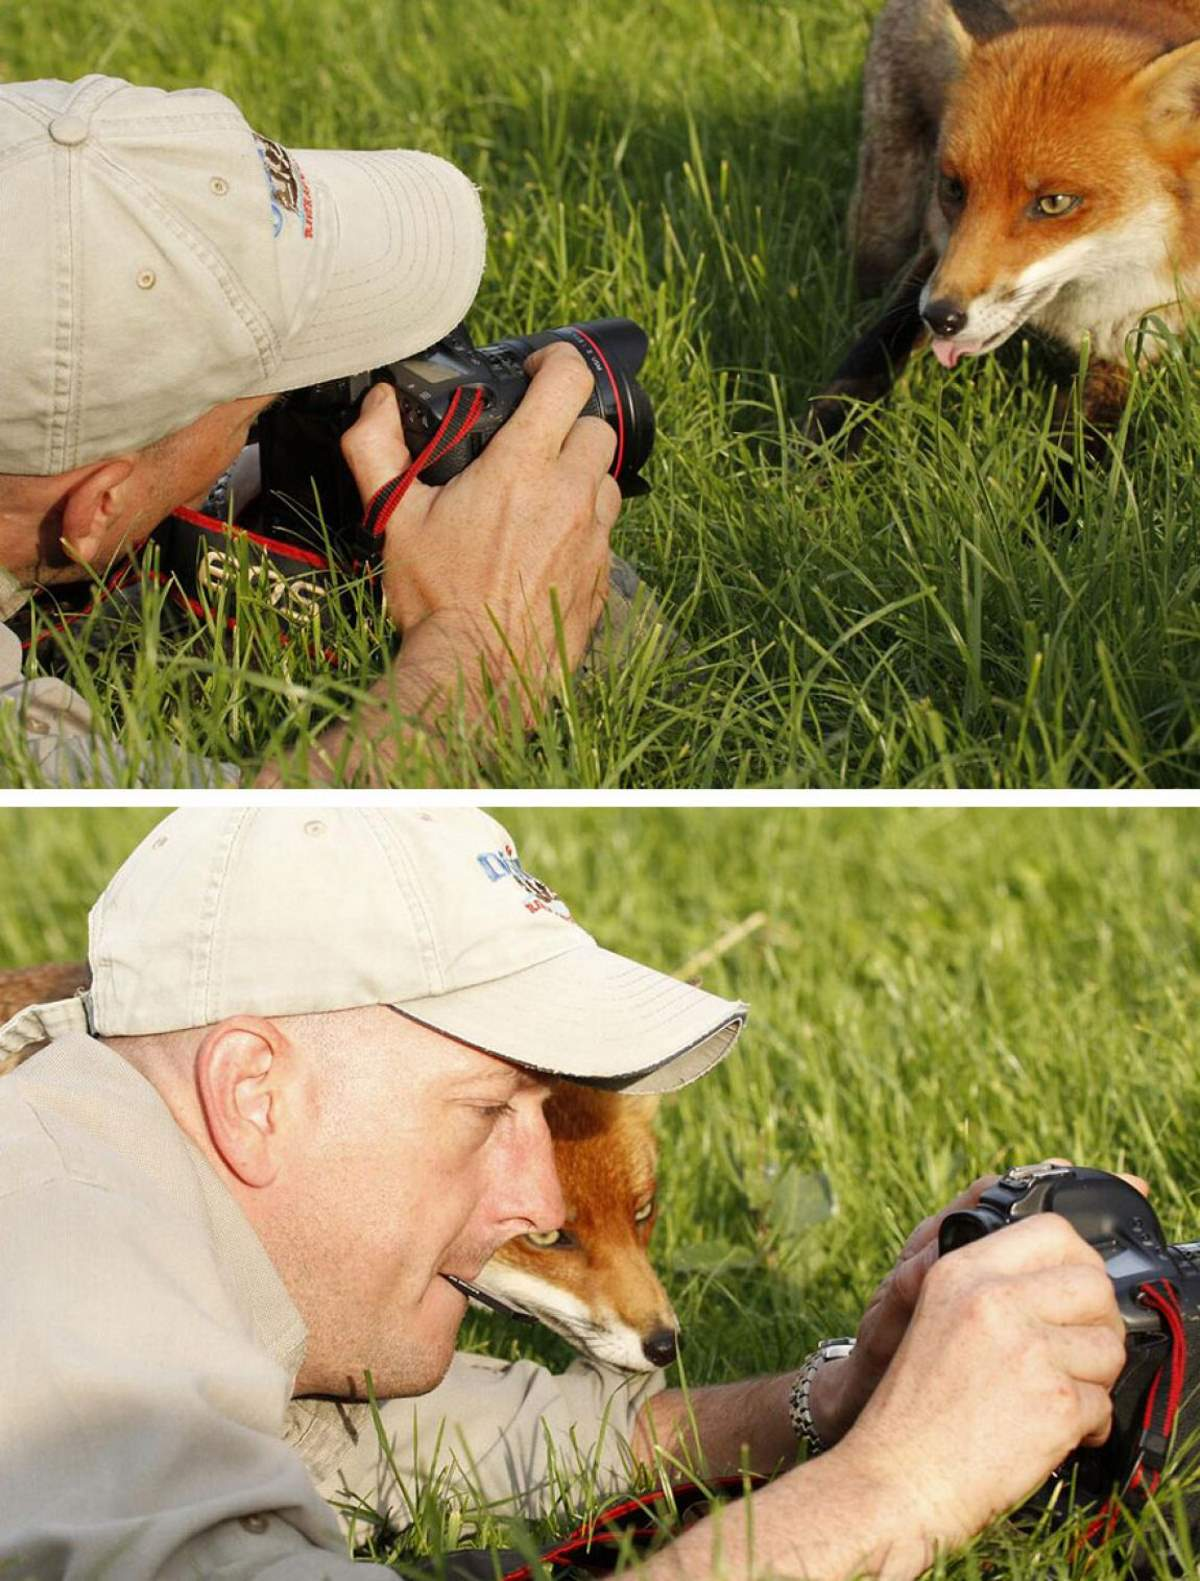 Photographers and Wild Animals: Photographers and Wild Animals: A fox and photographer